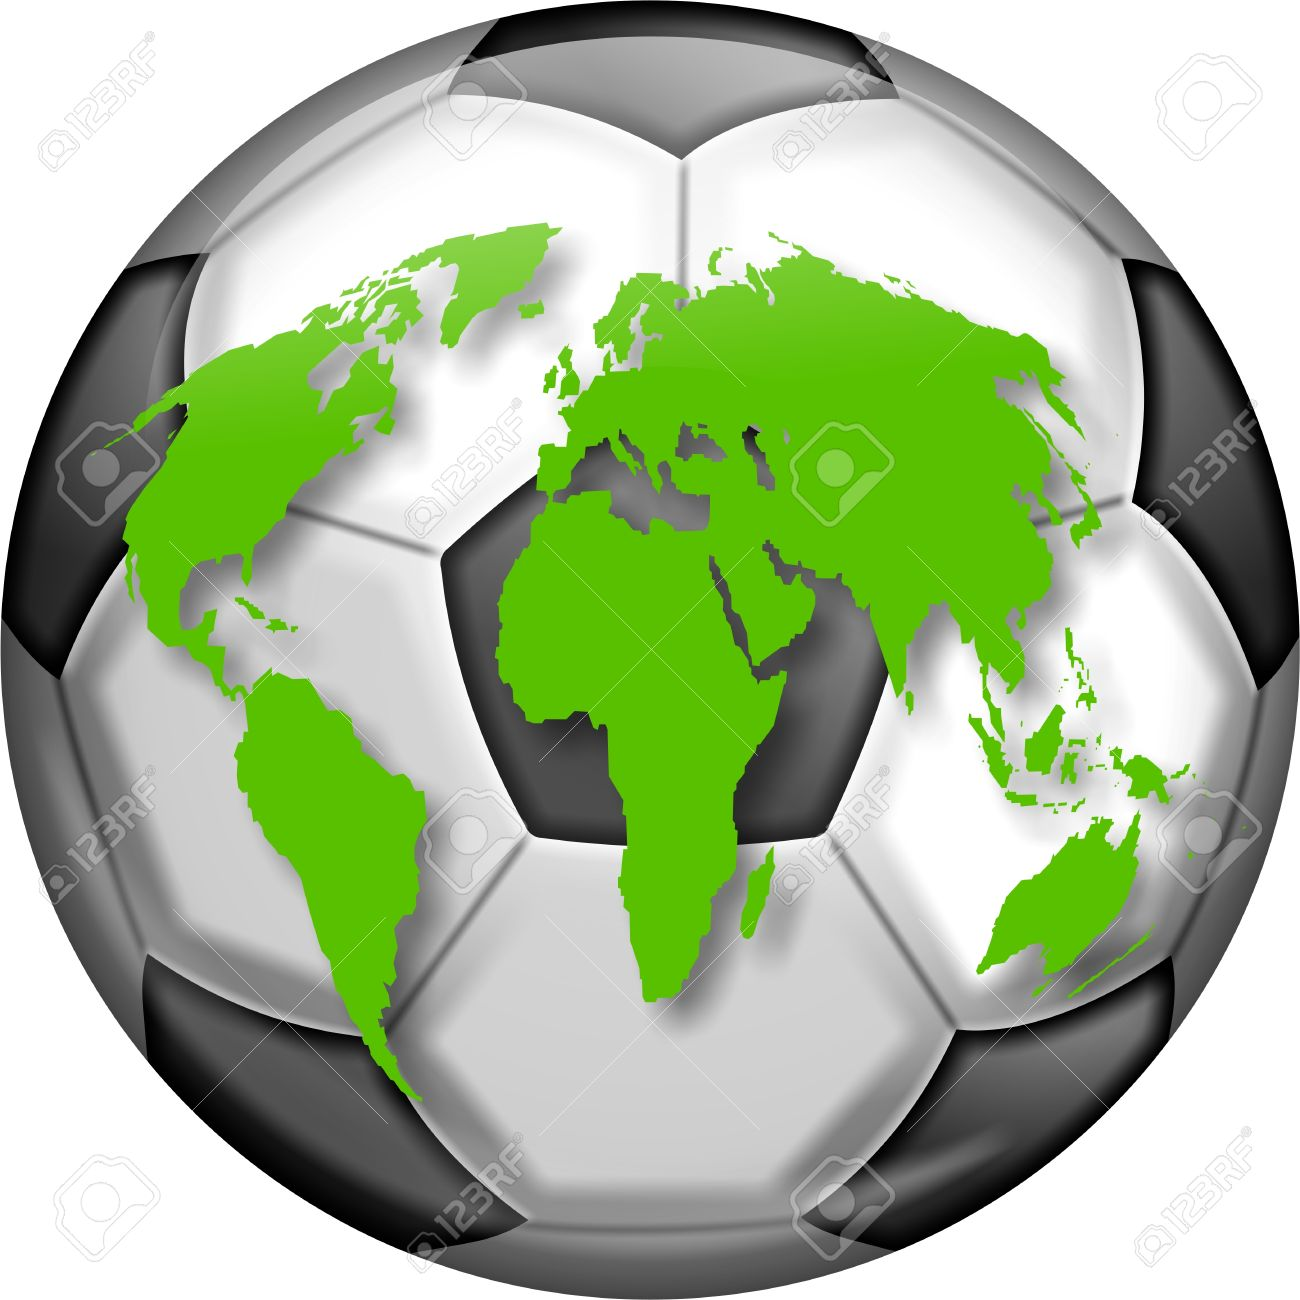 Illustration Of A Soccer Ball With A Map Of The World Designed.